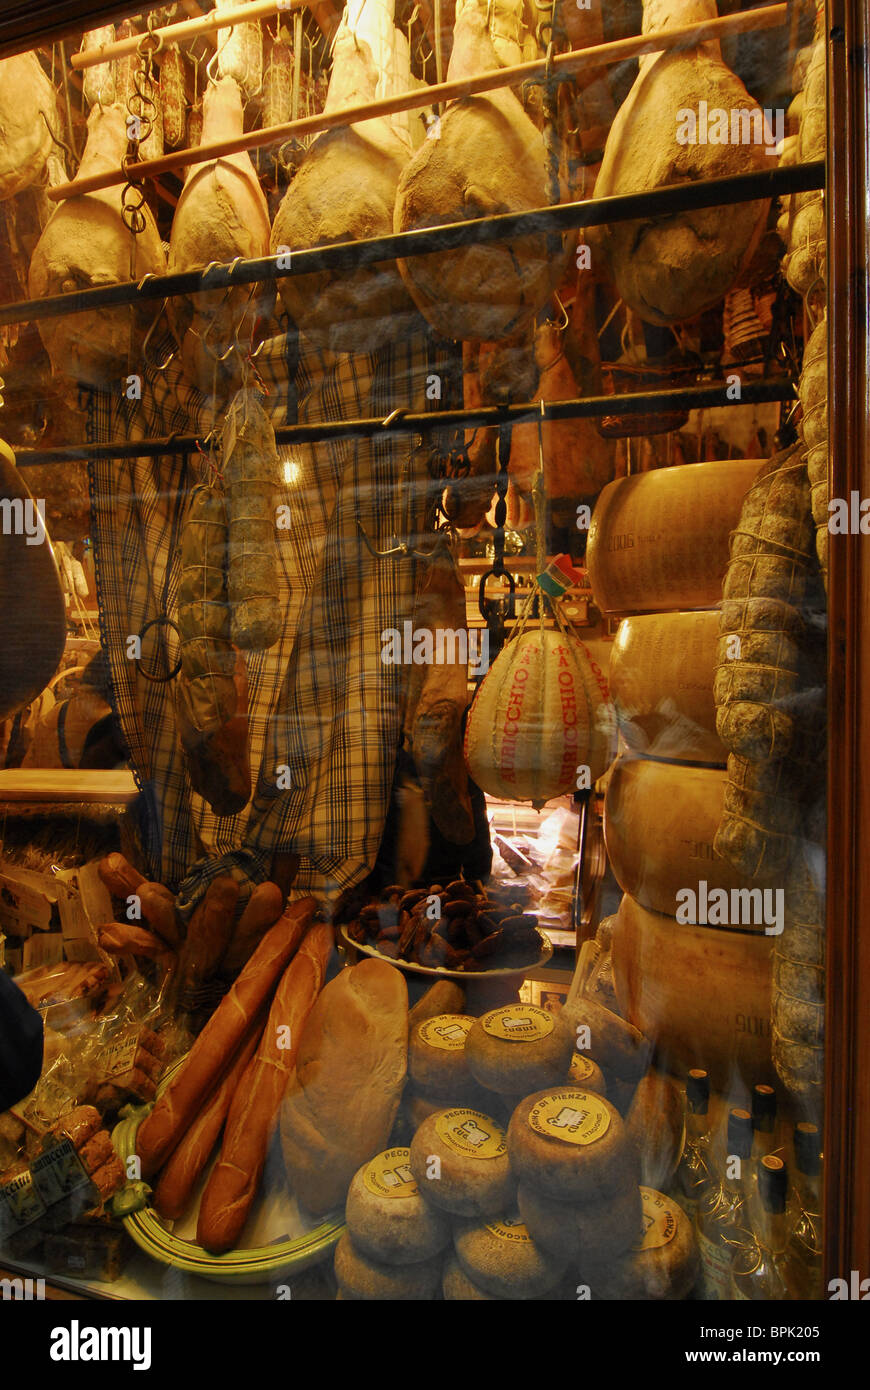 Ham and cheese in a shop window, Siena, Tuscany, Italy, Italy, Europe Stock Photo